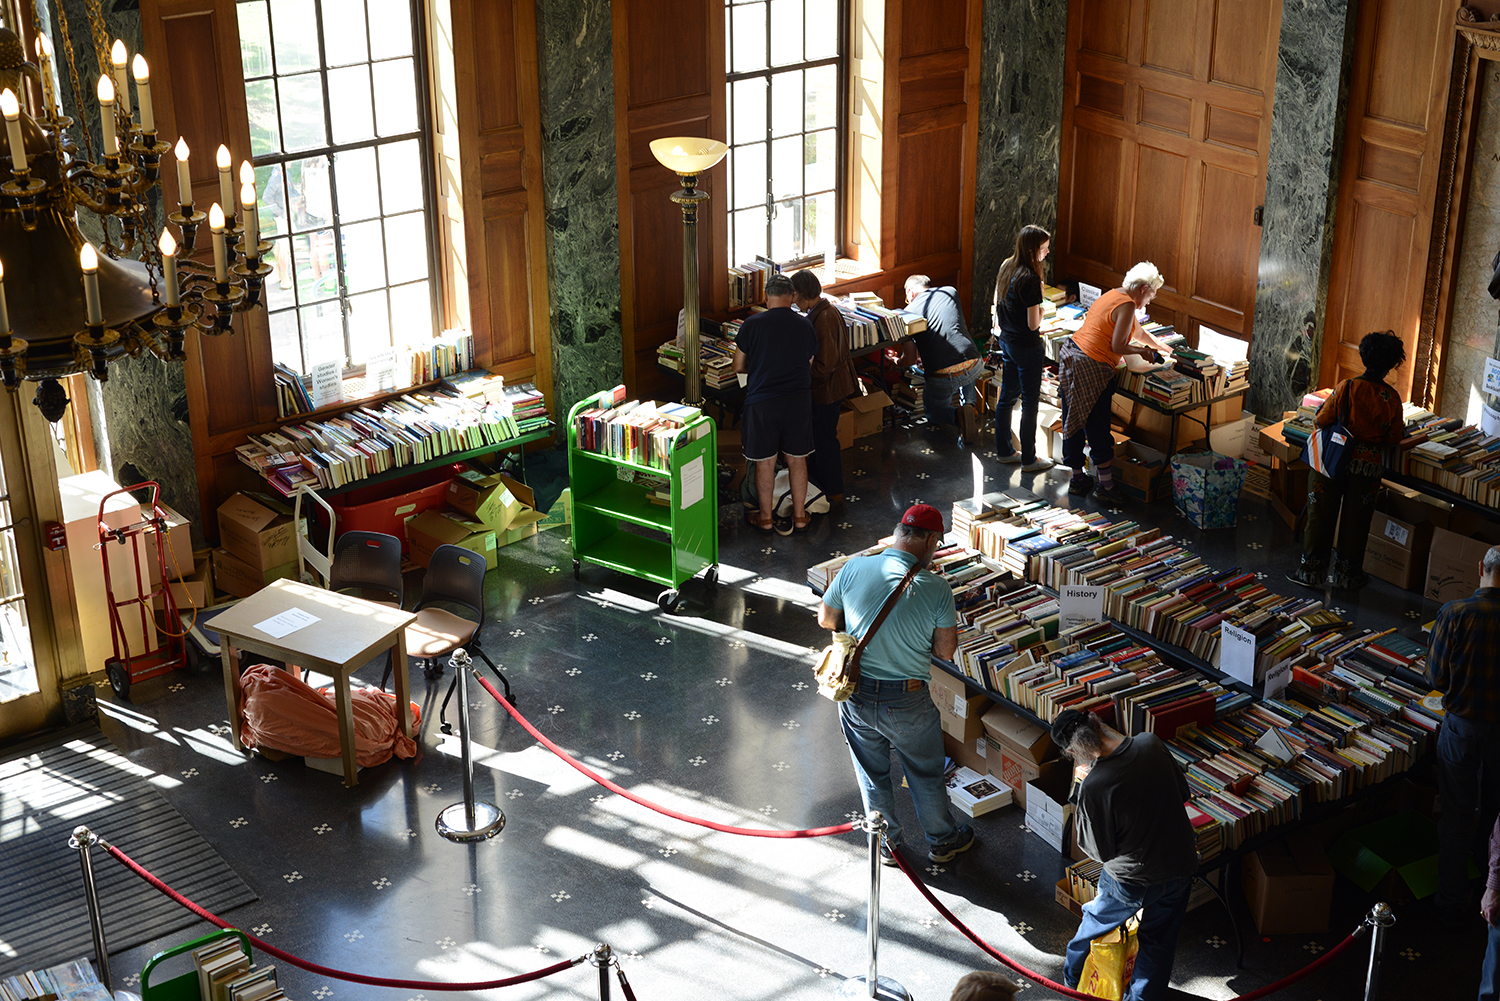 Friends of the Wesleyan Library hosted their annual fall book sale Sept. 27 in the lobby of Olin Memorial Library.